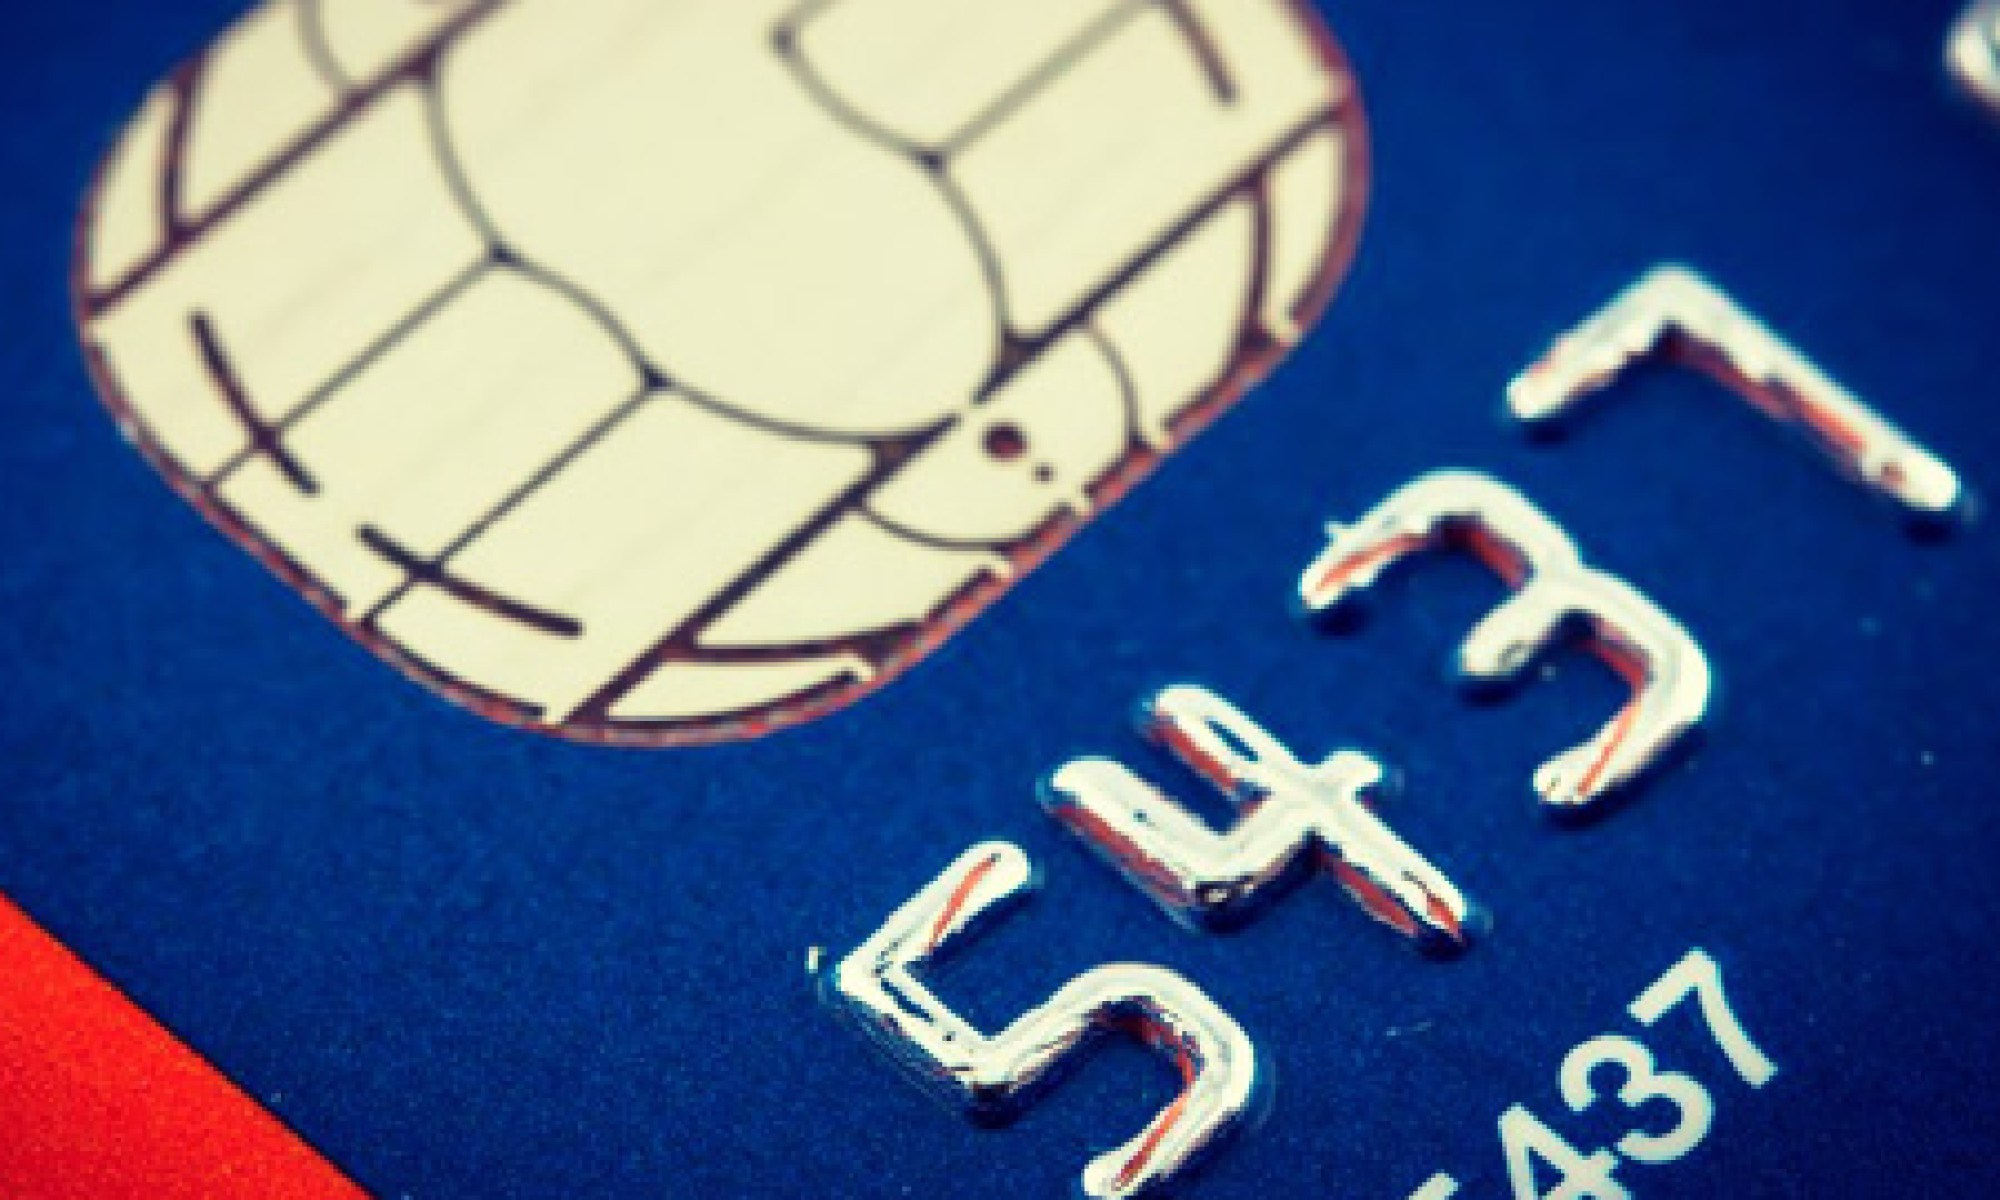 Mastercard launches sustainable card programme